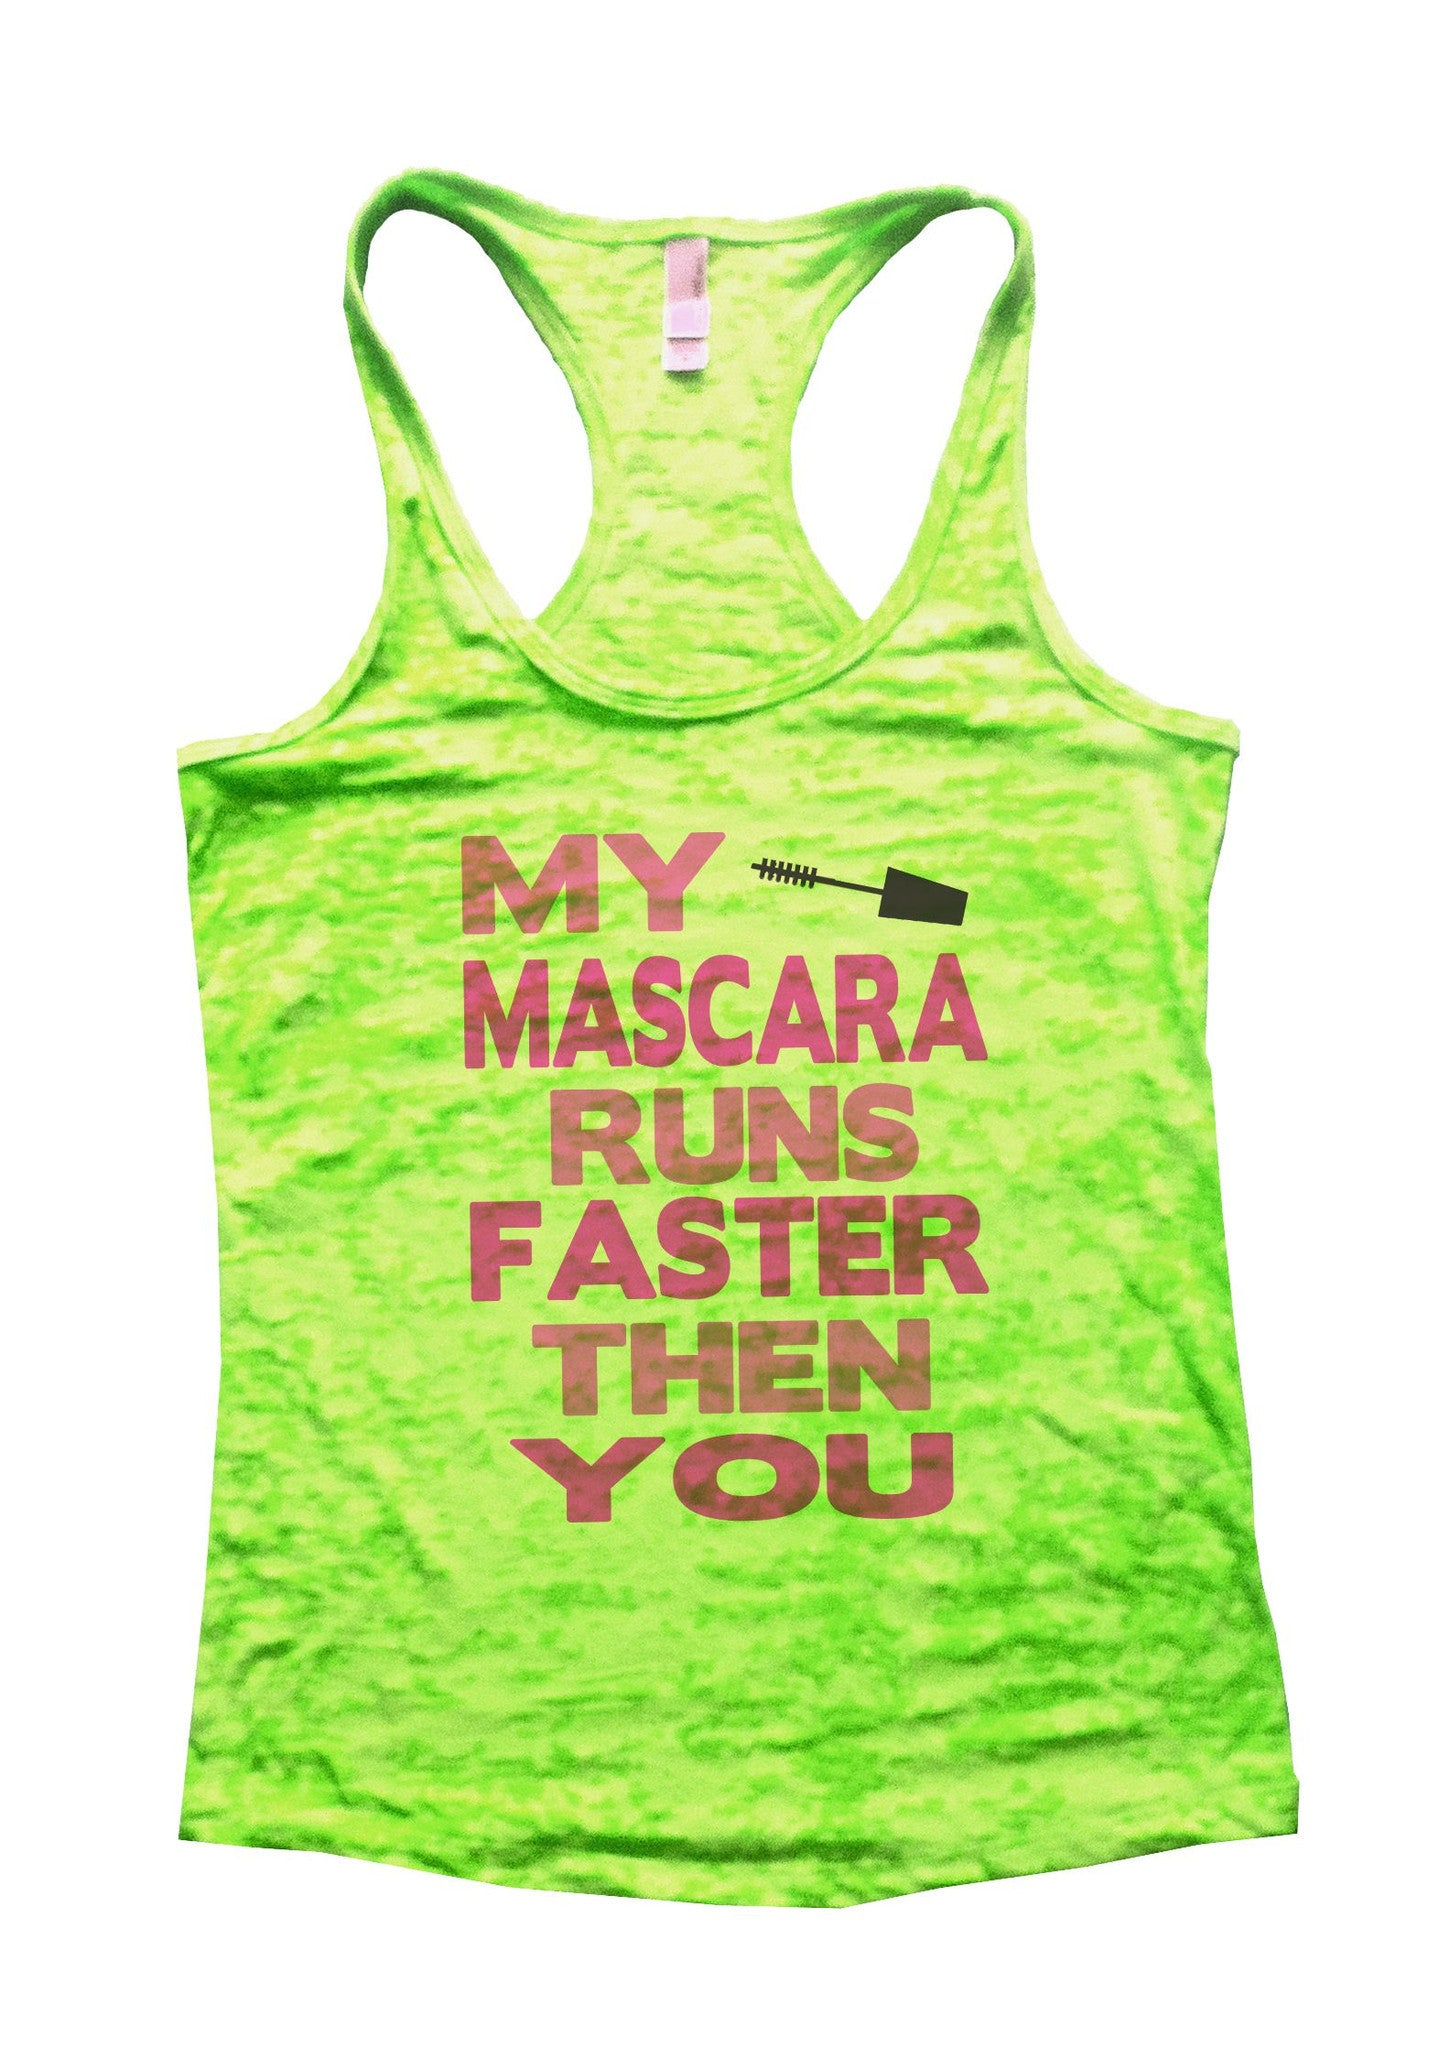 My Mascara Runs Faster Then You Burnout Tank Top By BurnoutTankTops.com - 641 - Funny Shirts Tank Tops Burnouts and Triblends  - 2